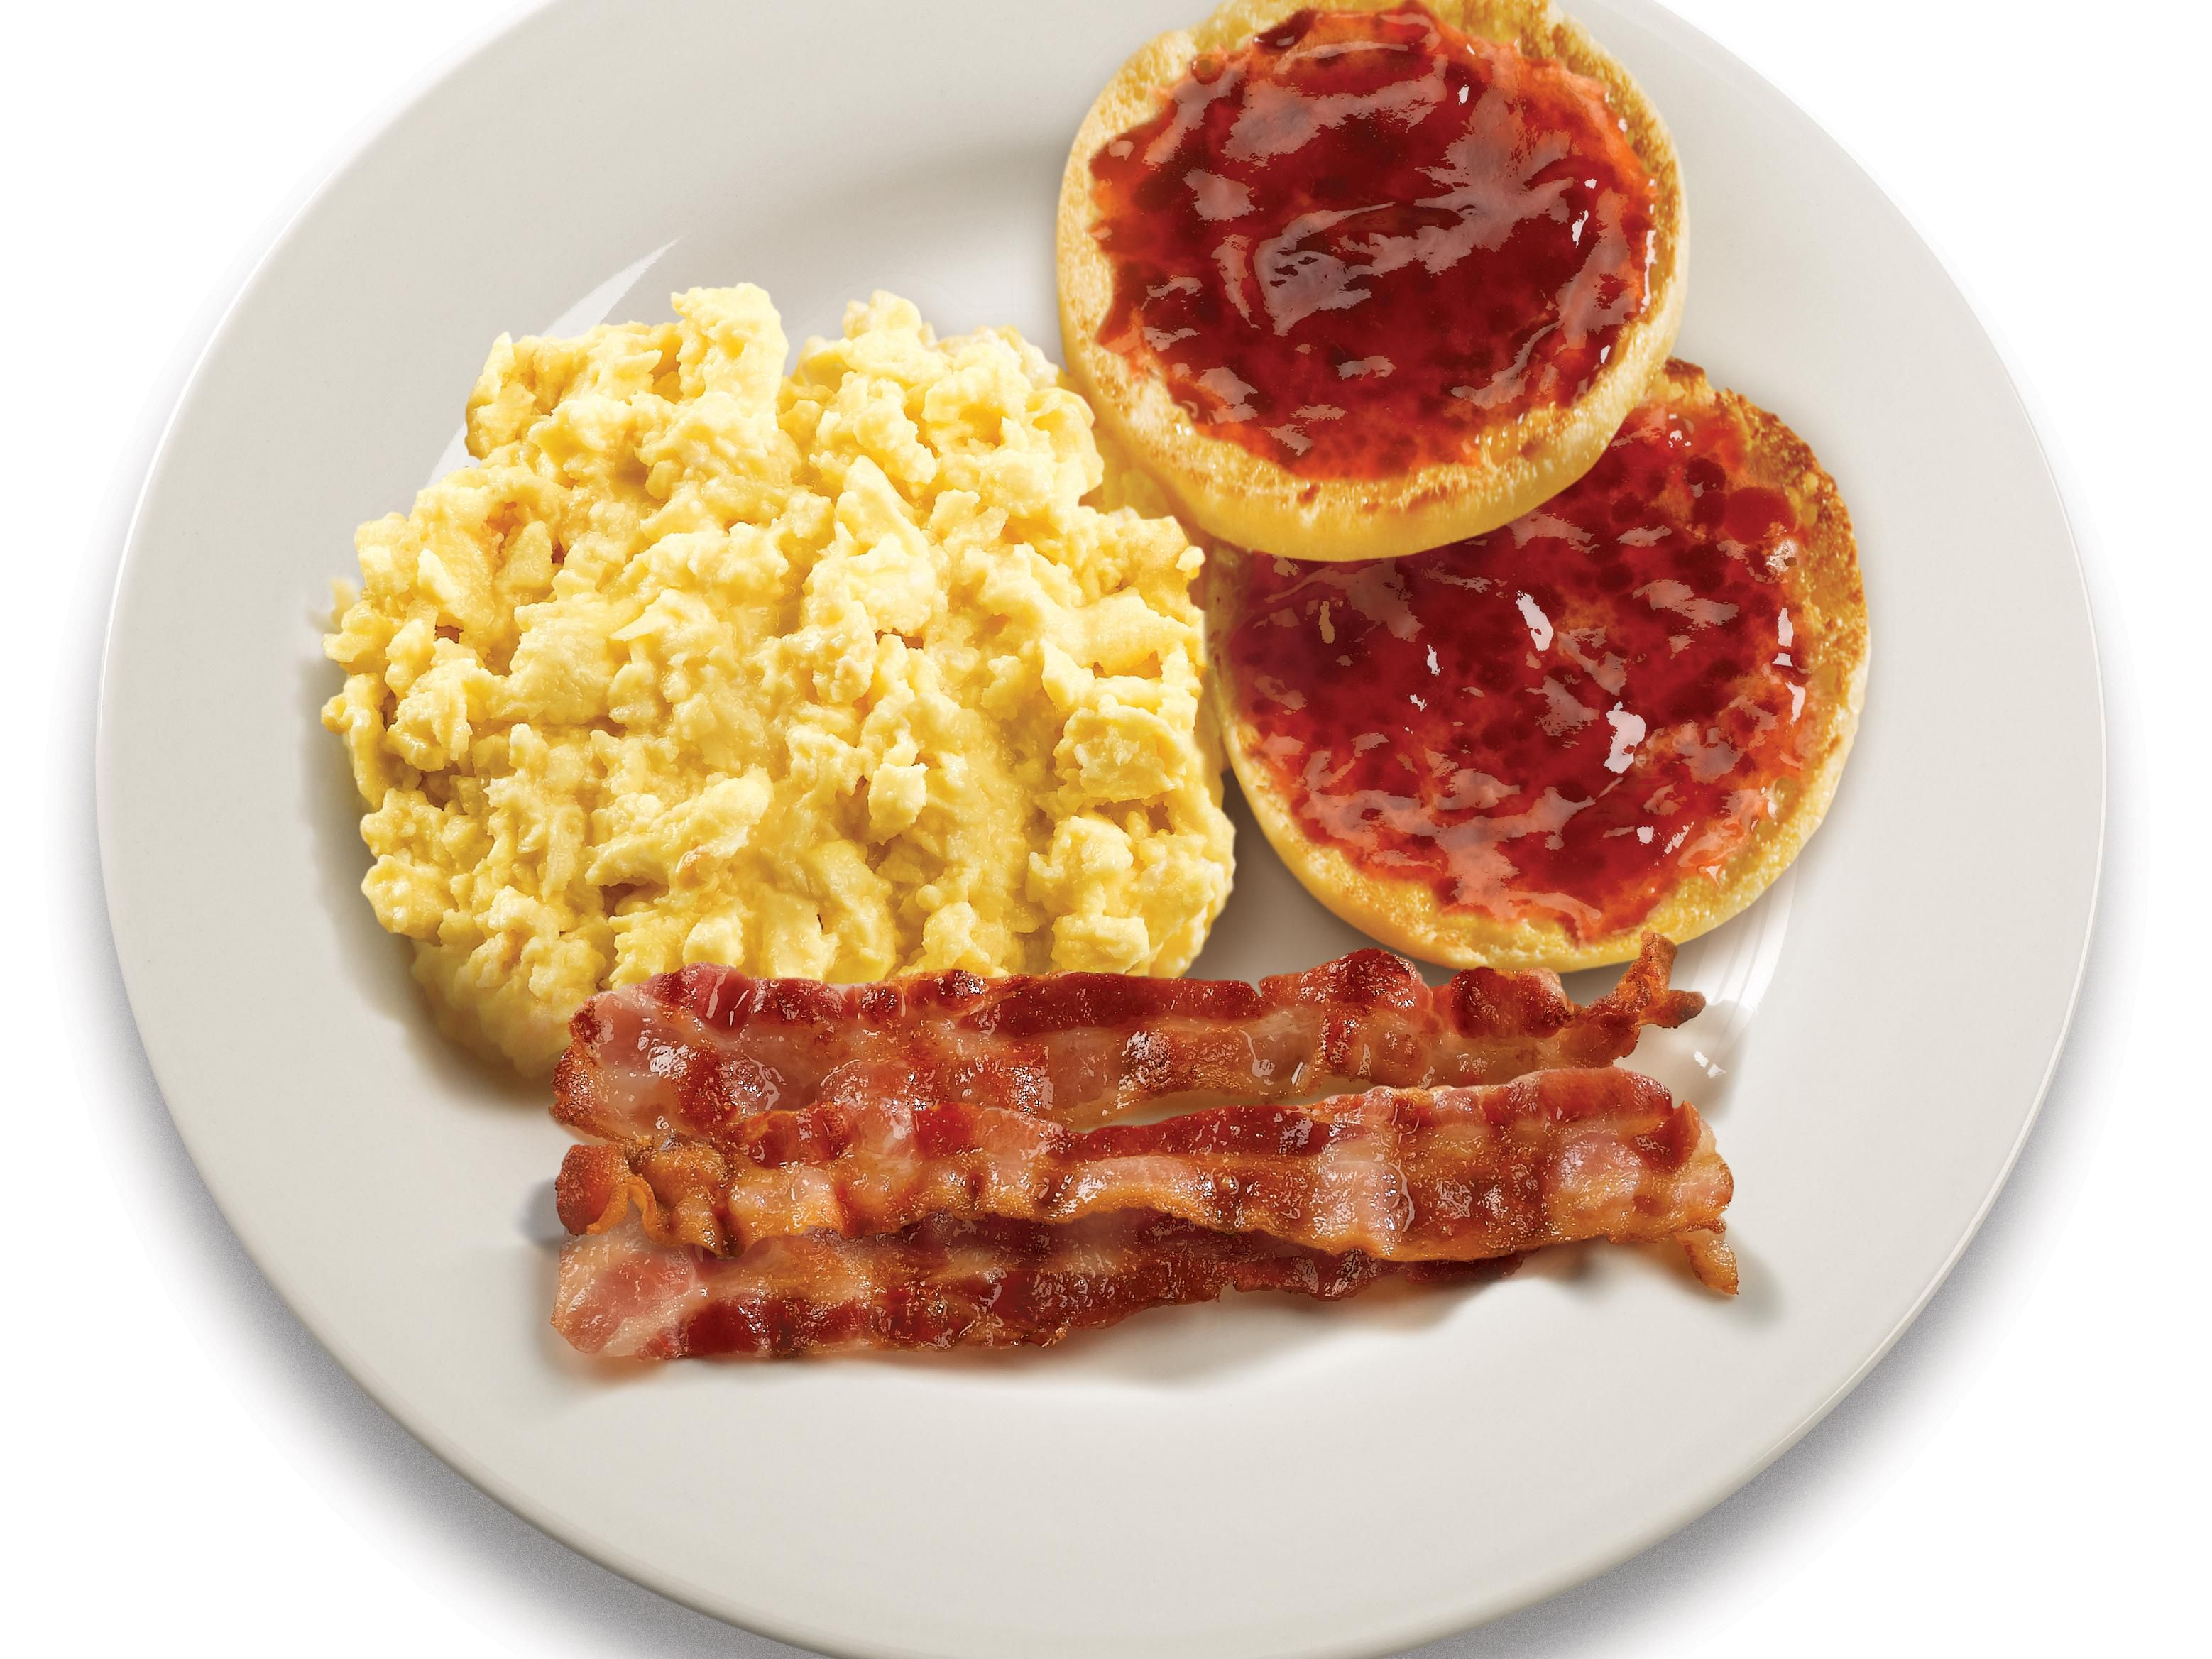 Our Complimentary Breakfast offers many options...